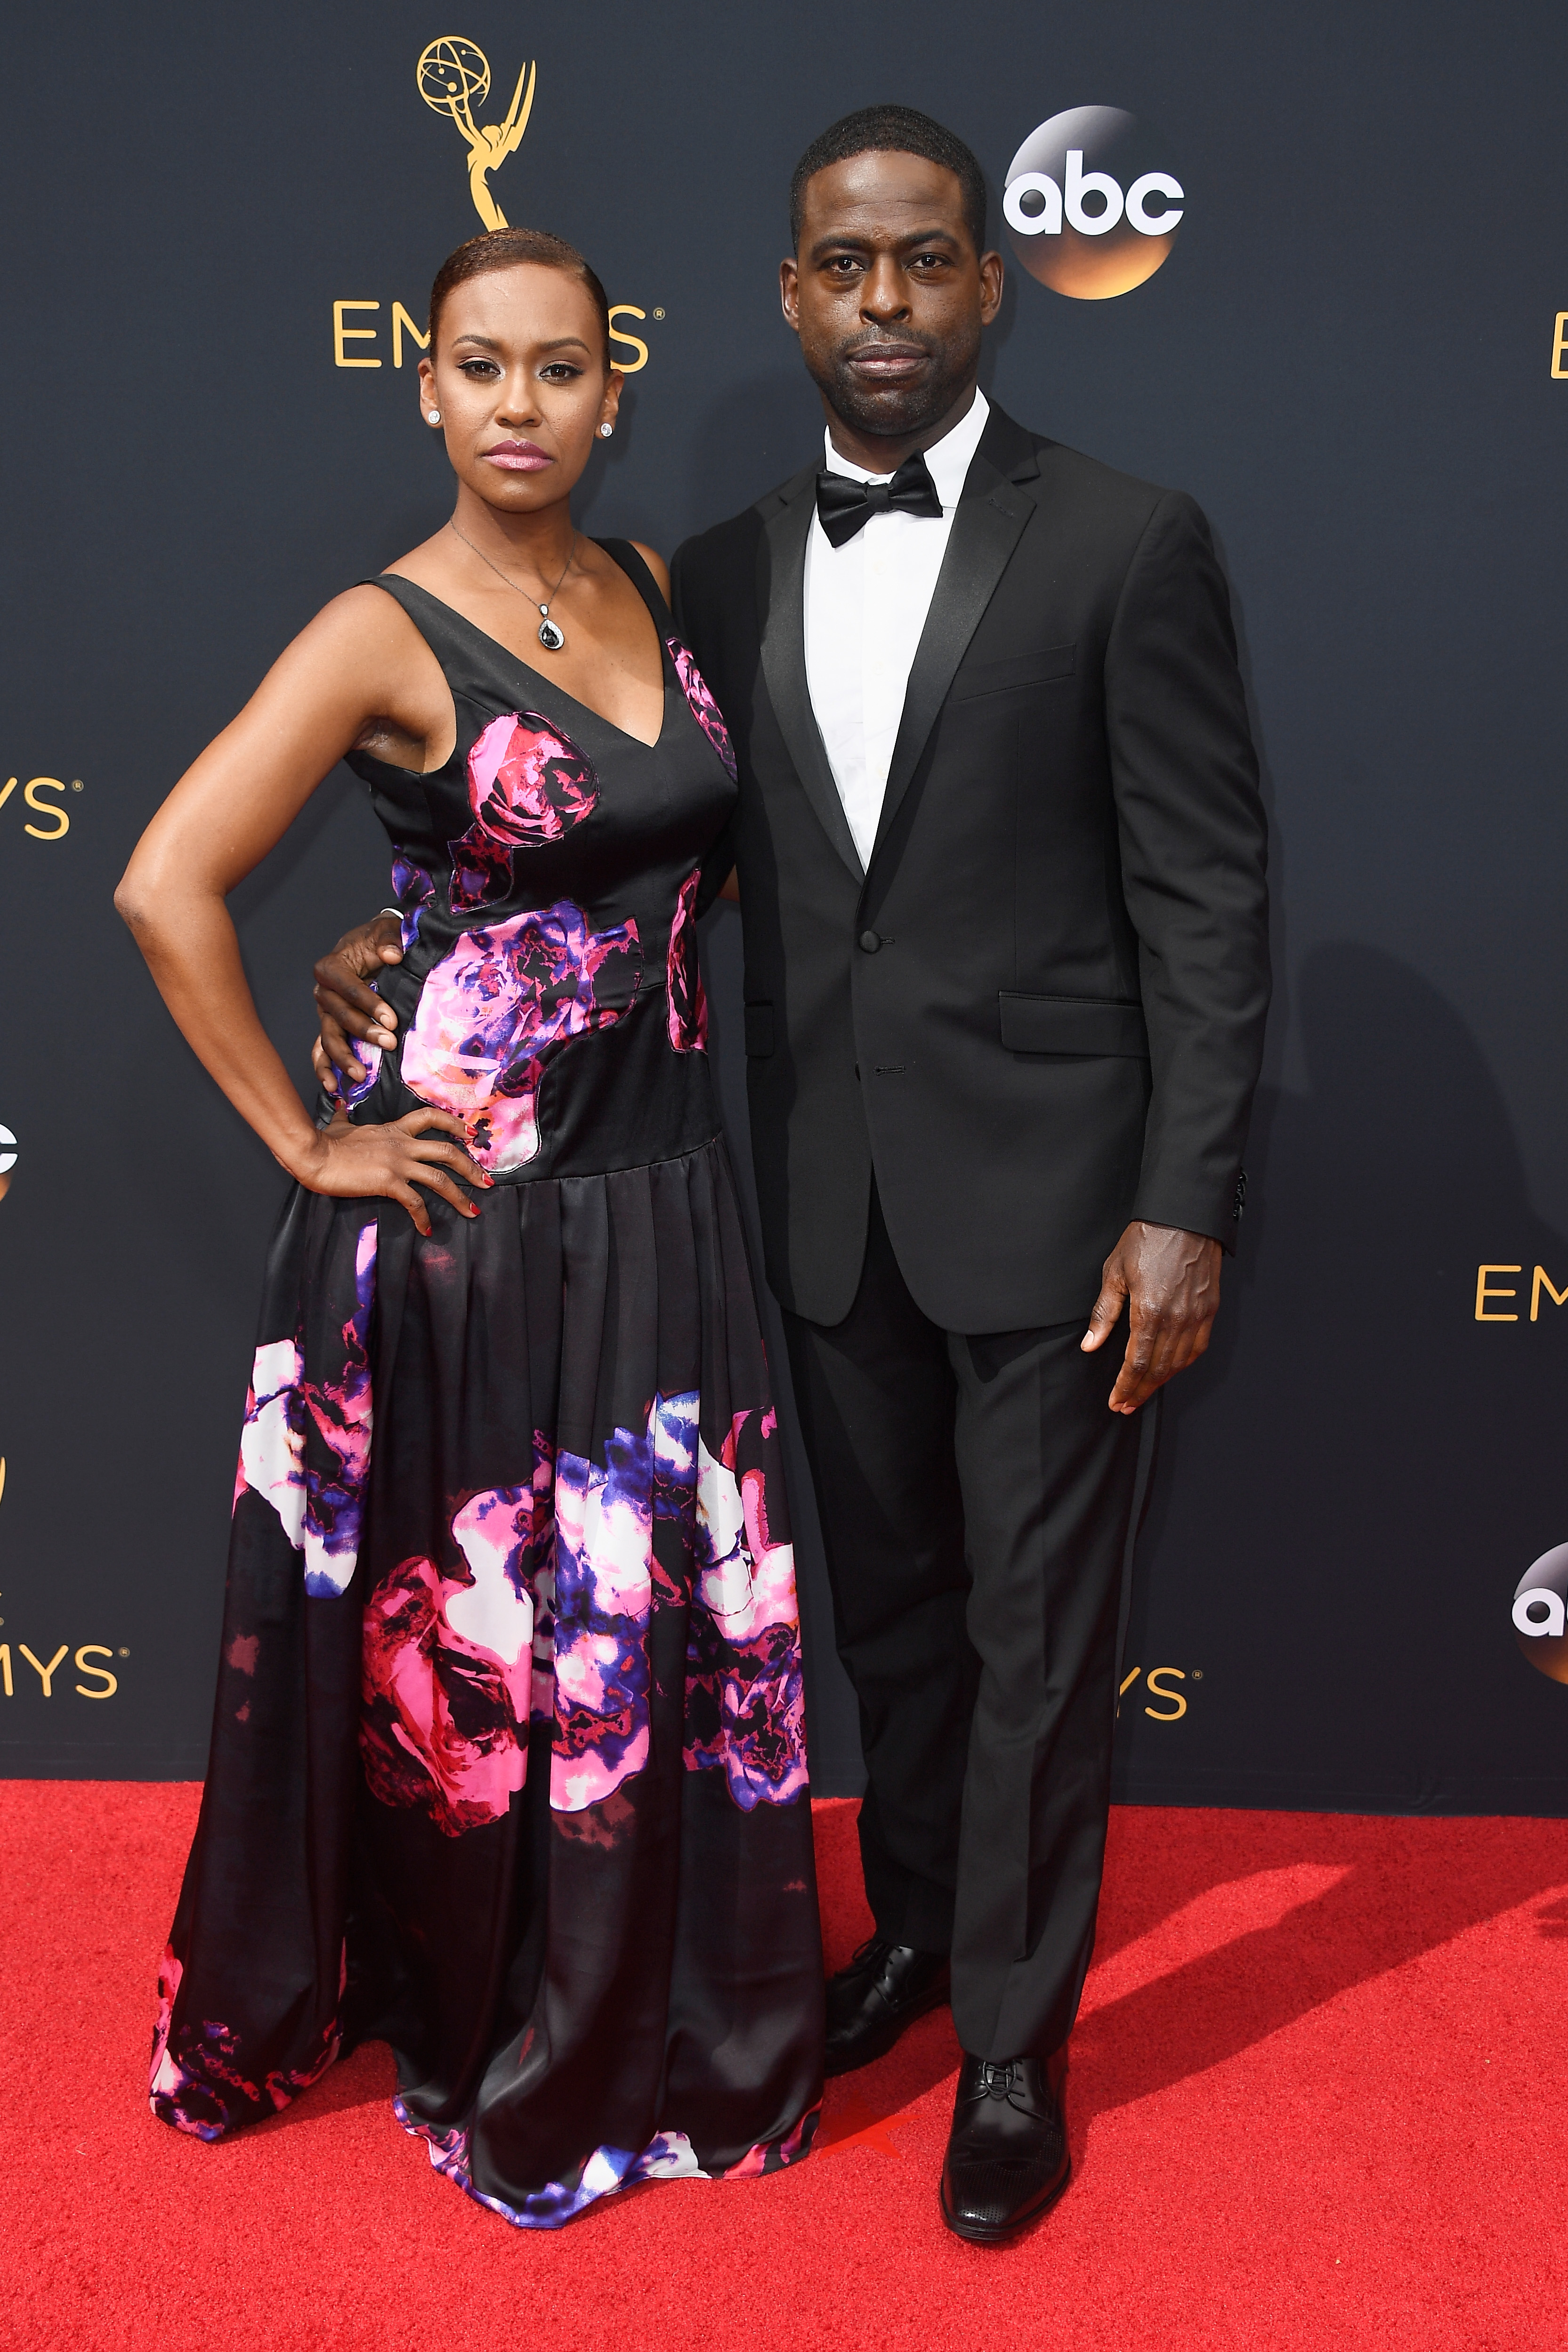 Ryan Michelle Bathe and Sterling K. Brown arrive at the 68th Annual Primetime Emmy Awards at Microsoft Theater on Sept. 18, 2016 in Los Angeles.